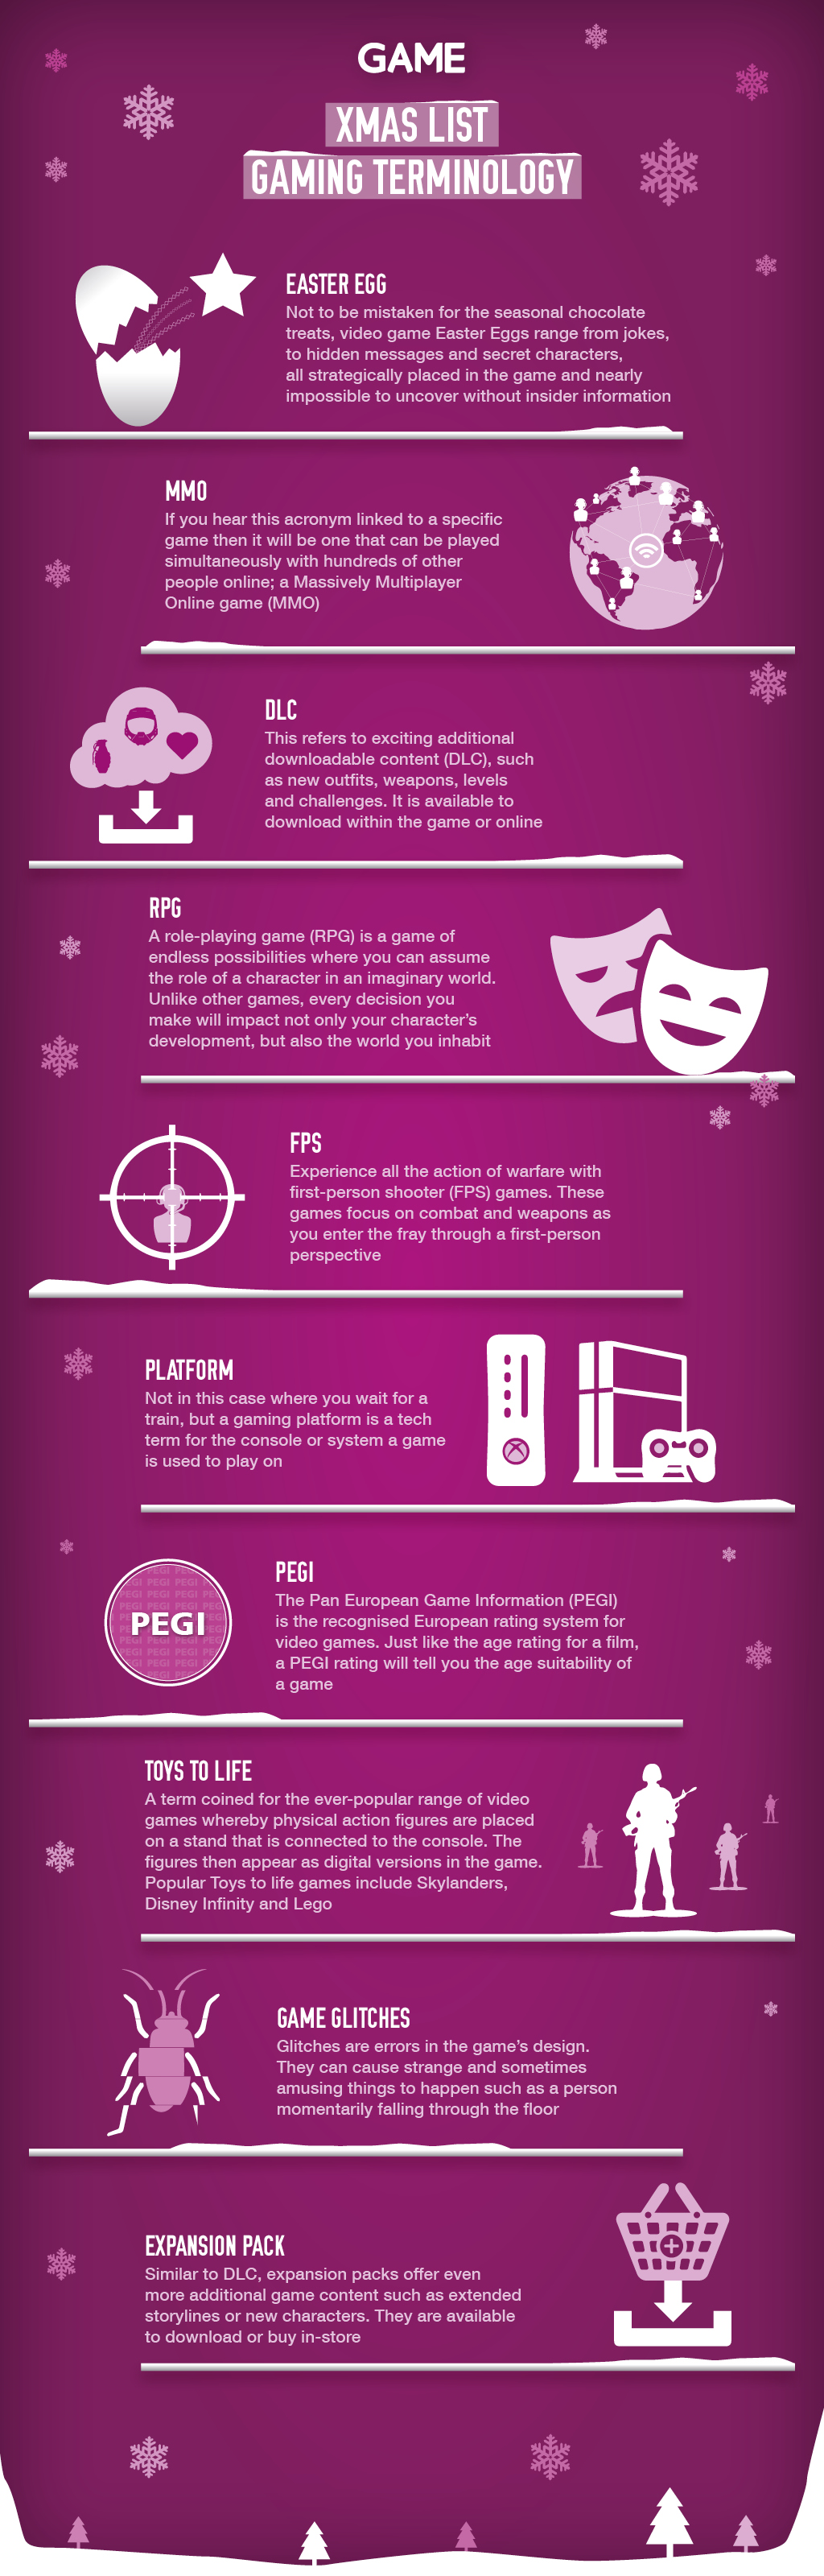 Game xmas list - gaming terminology[1]